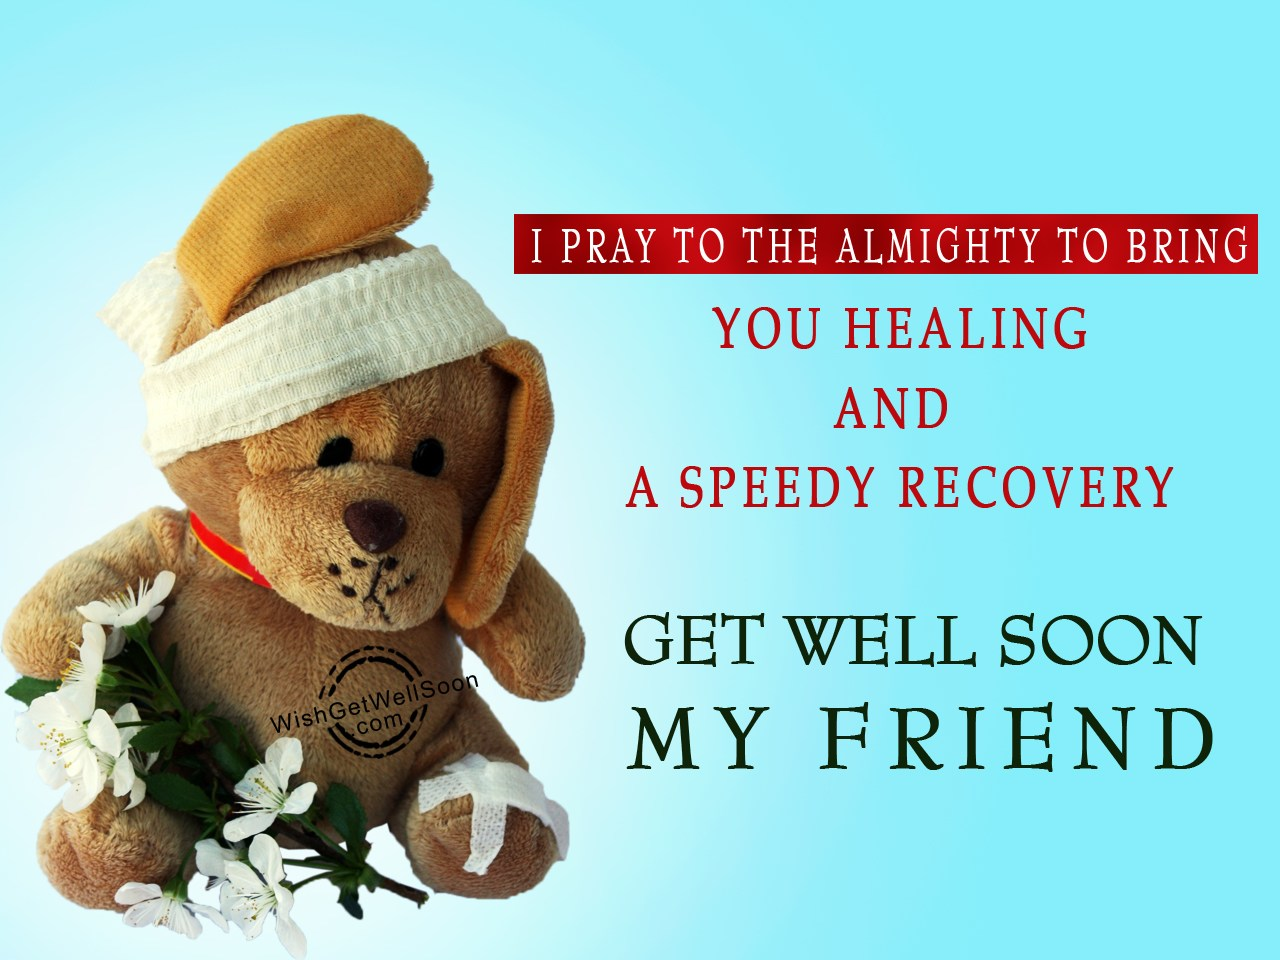 Congenial Coworker Get Well Soon Messages I Pray To Almighty Get Well Soon My Friend Get Well Soon Messages Teachers cards Get Well Soon Messages